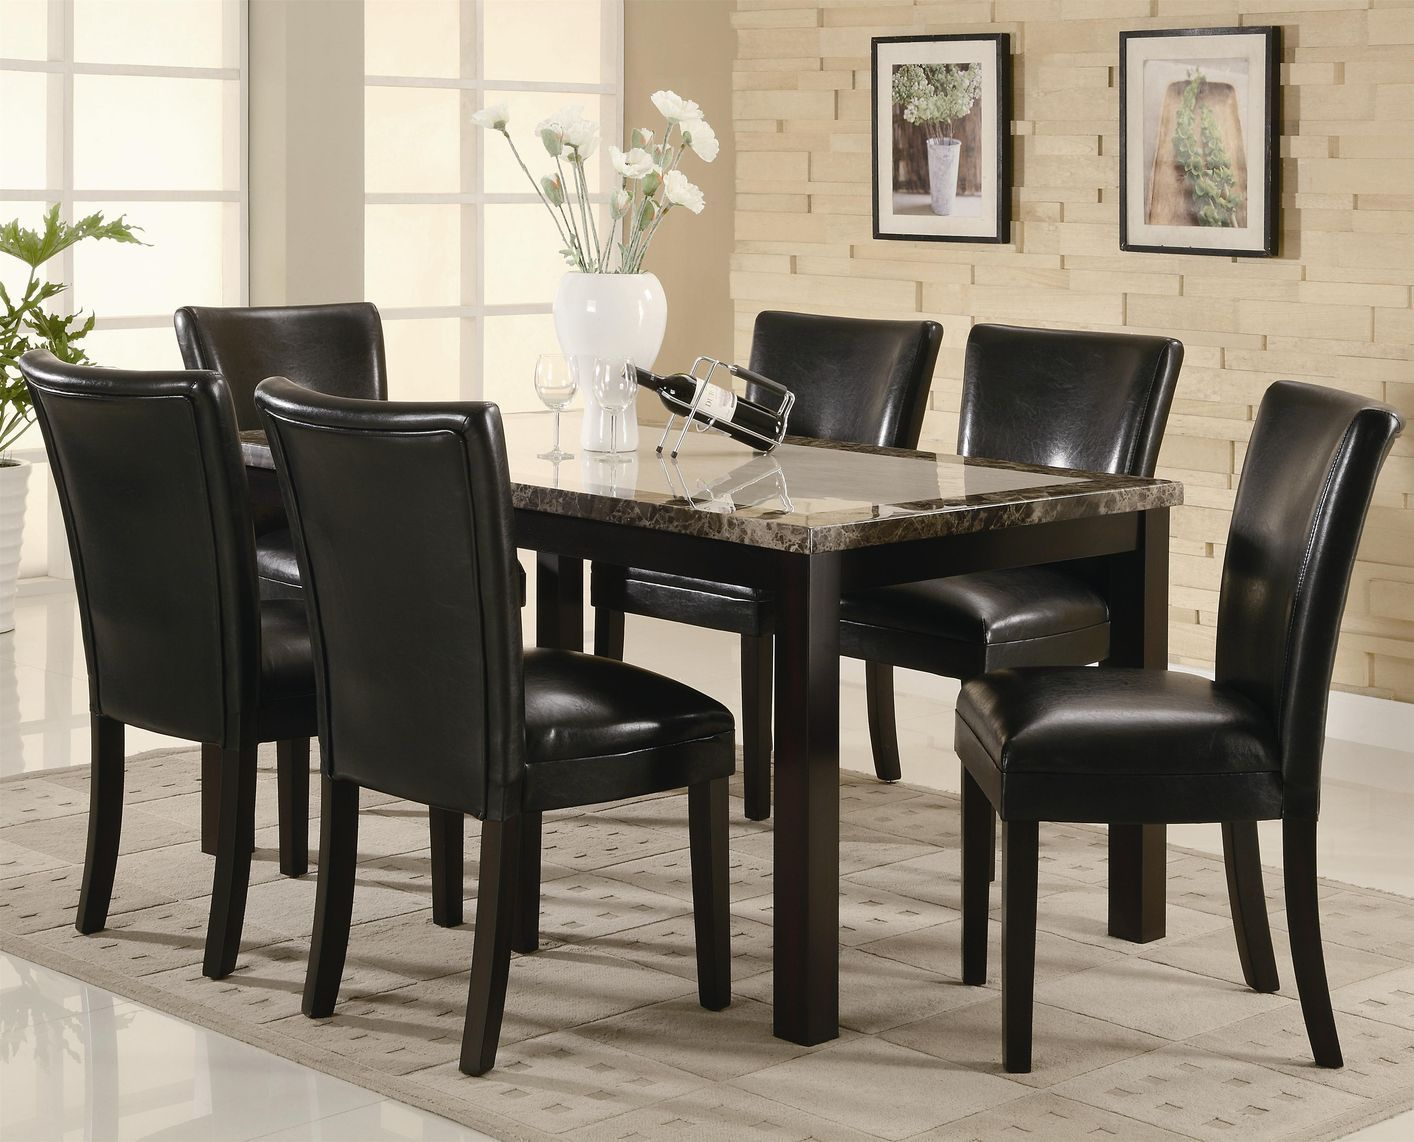 The Carter Rectangular Leg Dining Table With Faux Marble Top Has Not Yet Been Reviewed